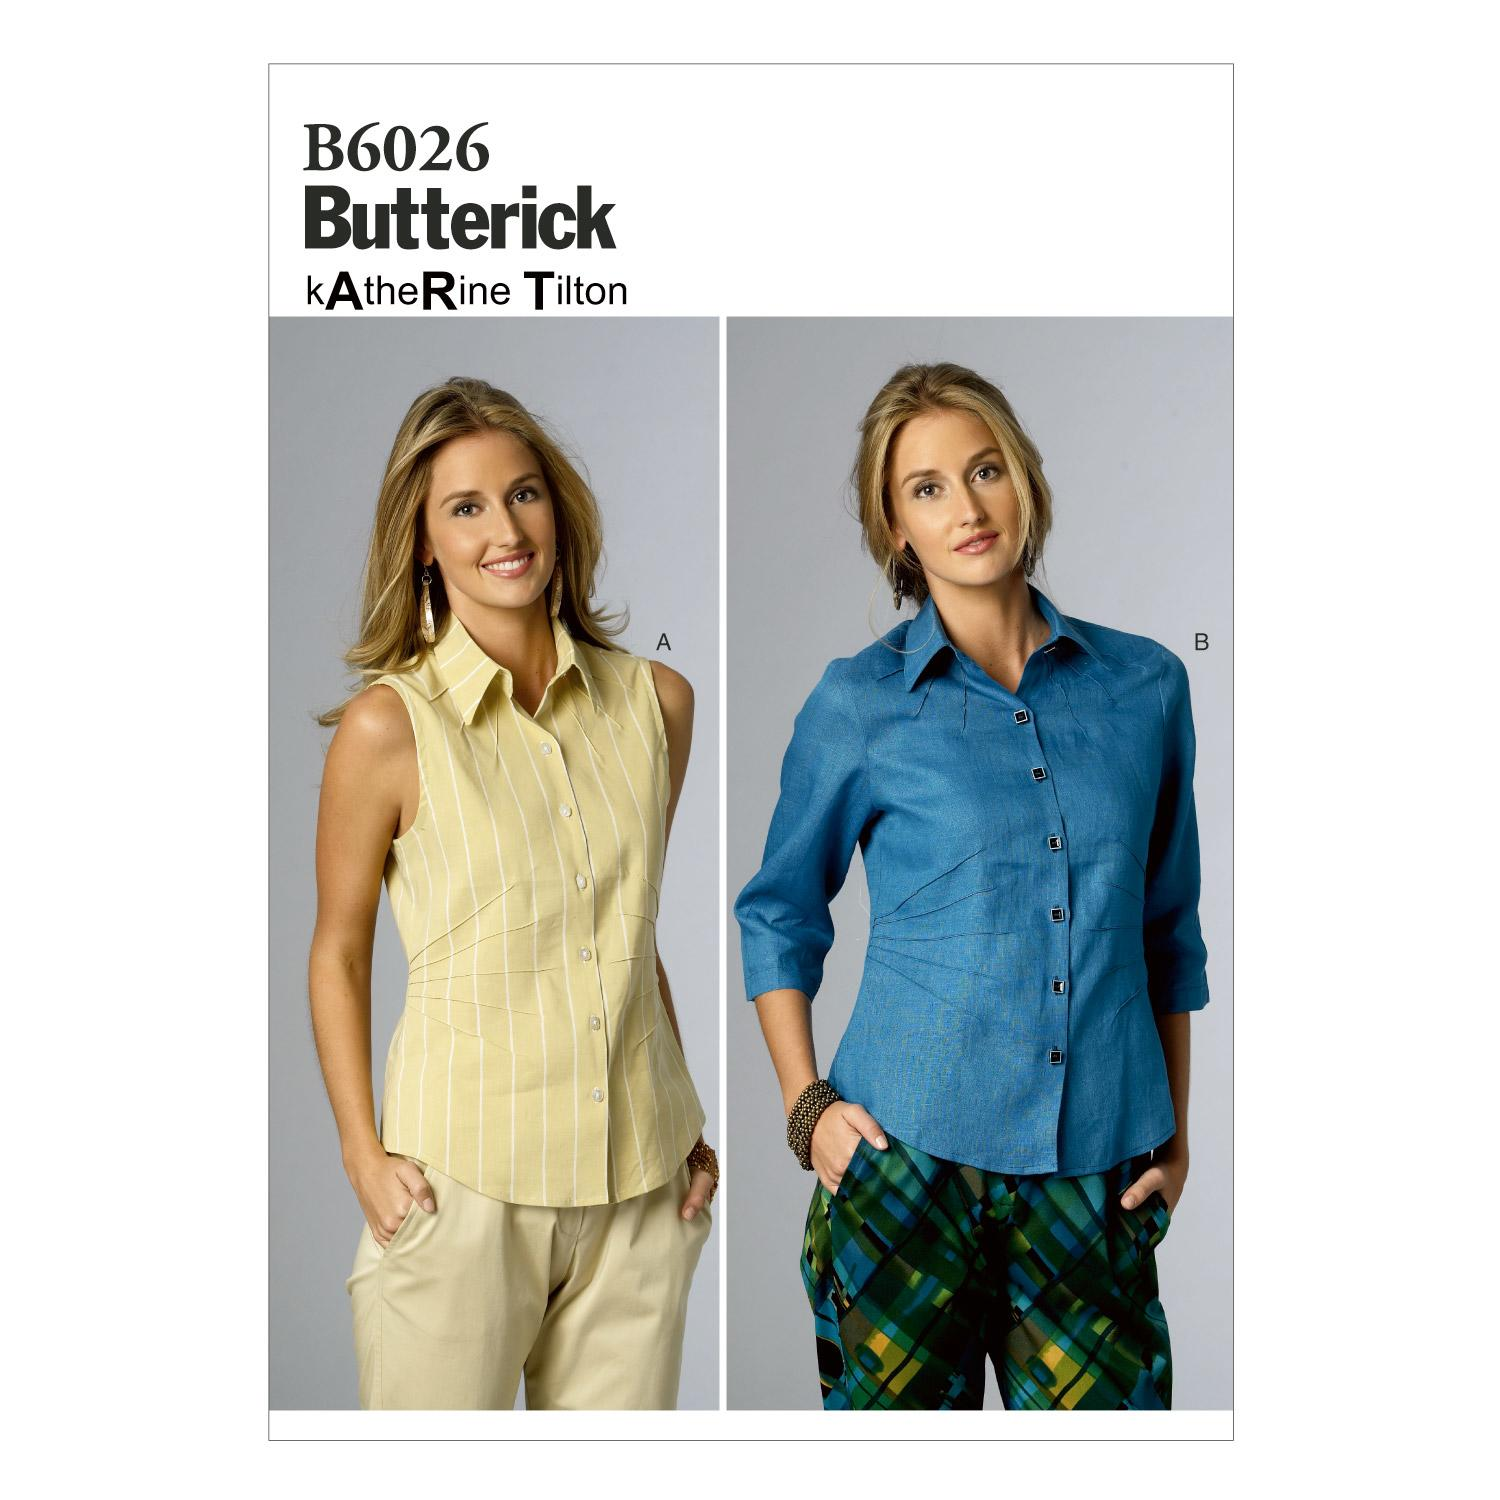 Butterick B6026 Misses' Top